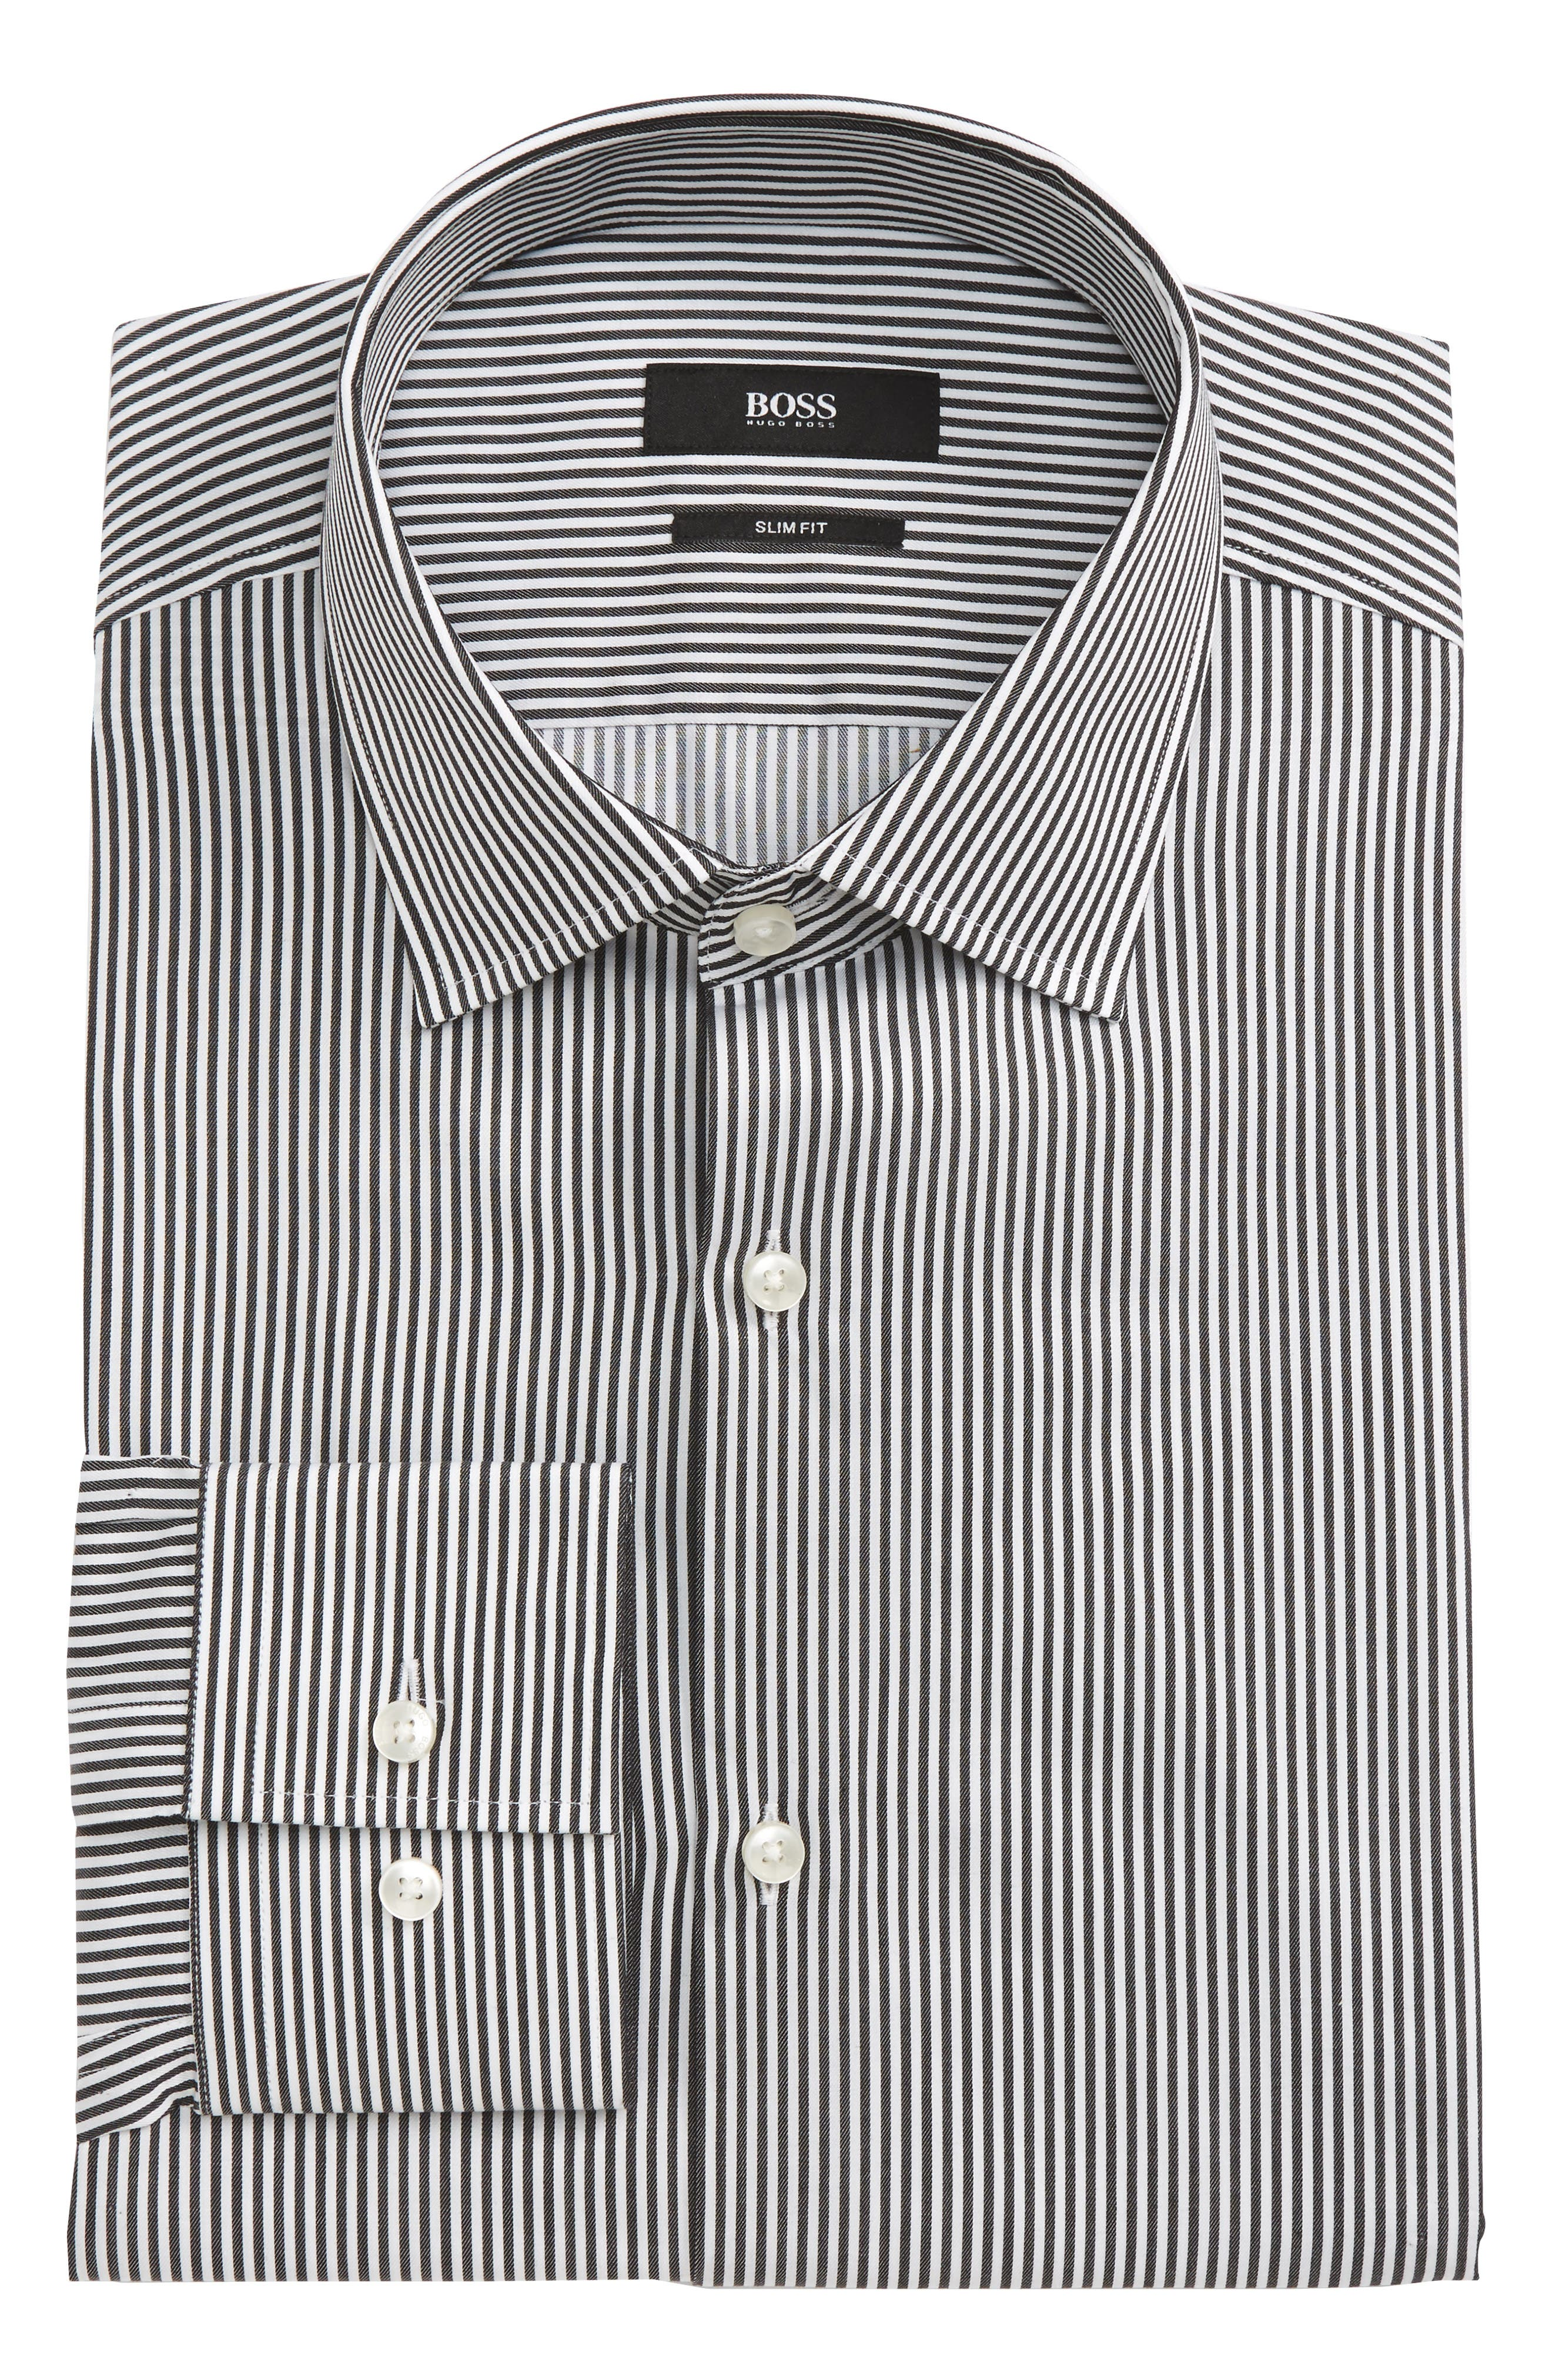 Alternate Image 1 Selected - BOSS Jenno Slim Fit Stripe Dress Shirt